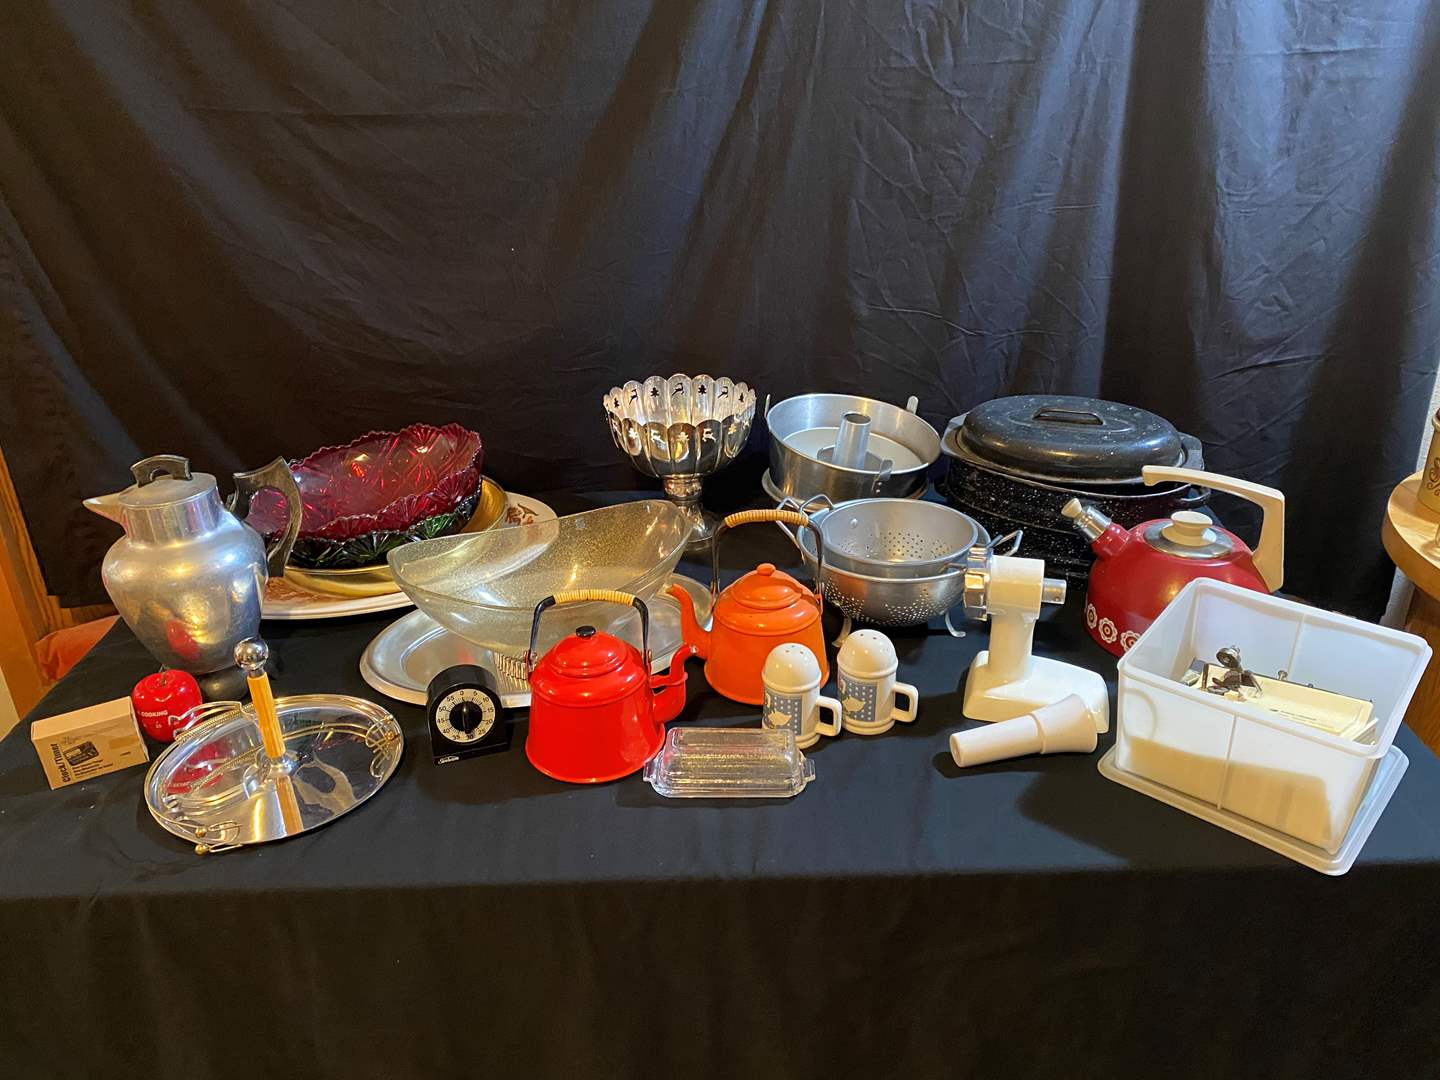 Lot # 99 - Misc. Kitchen items, Roasting Pans, Coffee Dispenser, Tea Kettle, Strainers, Serving Platters & More.. (main image)